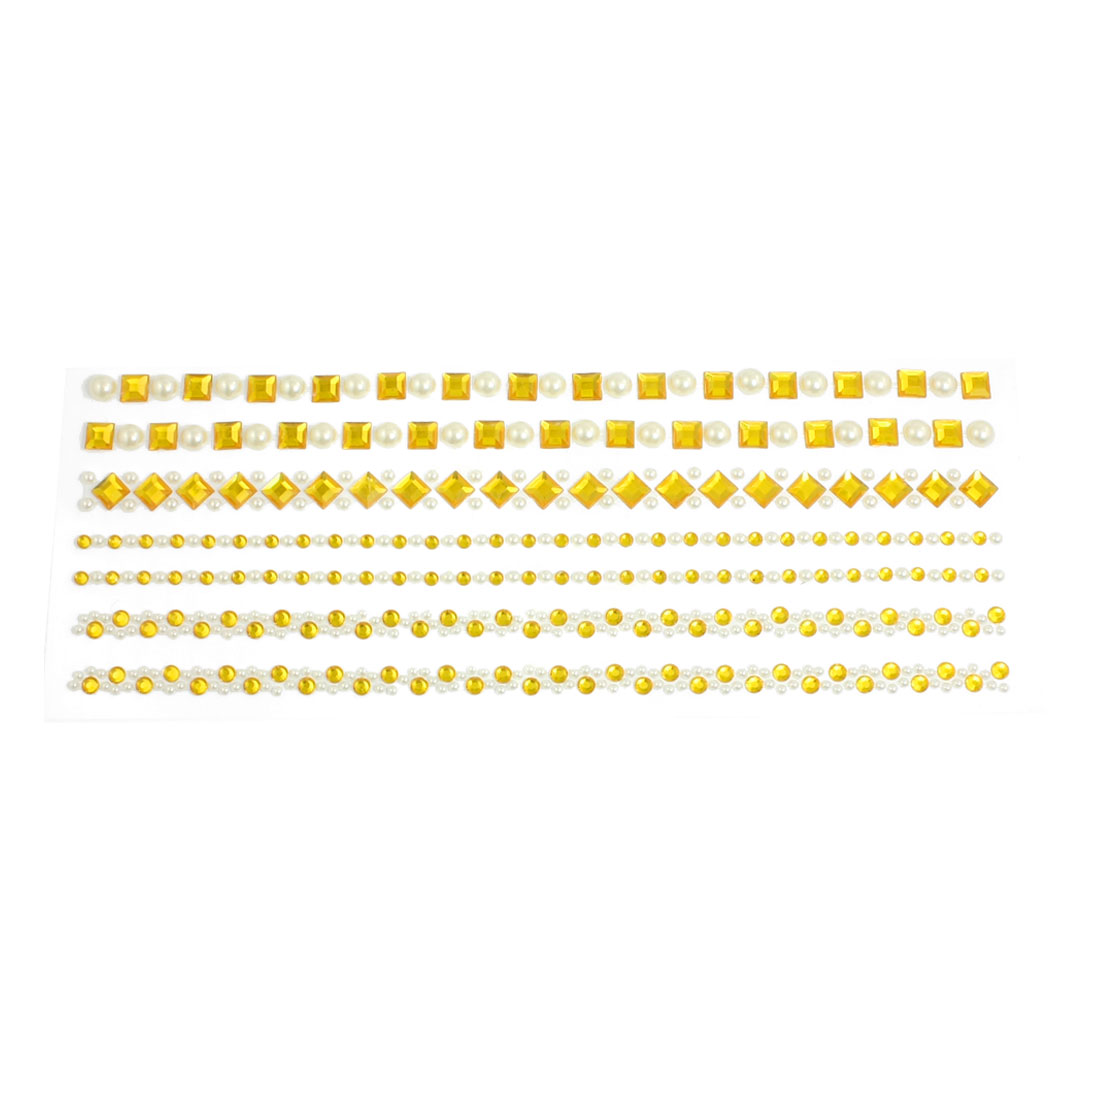 Gold Tone Plastic Adhesive Crystal Sheet Sticker DIY Decor for Auto Truck